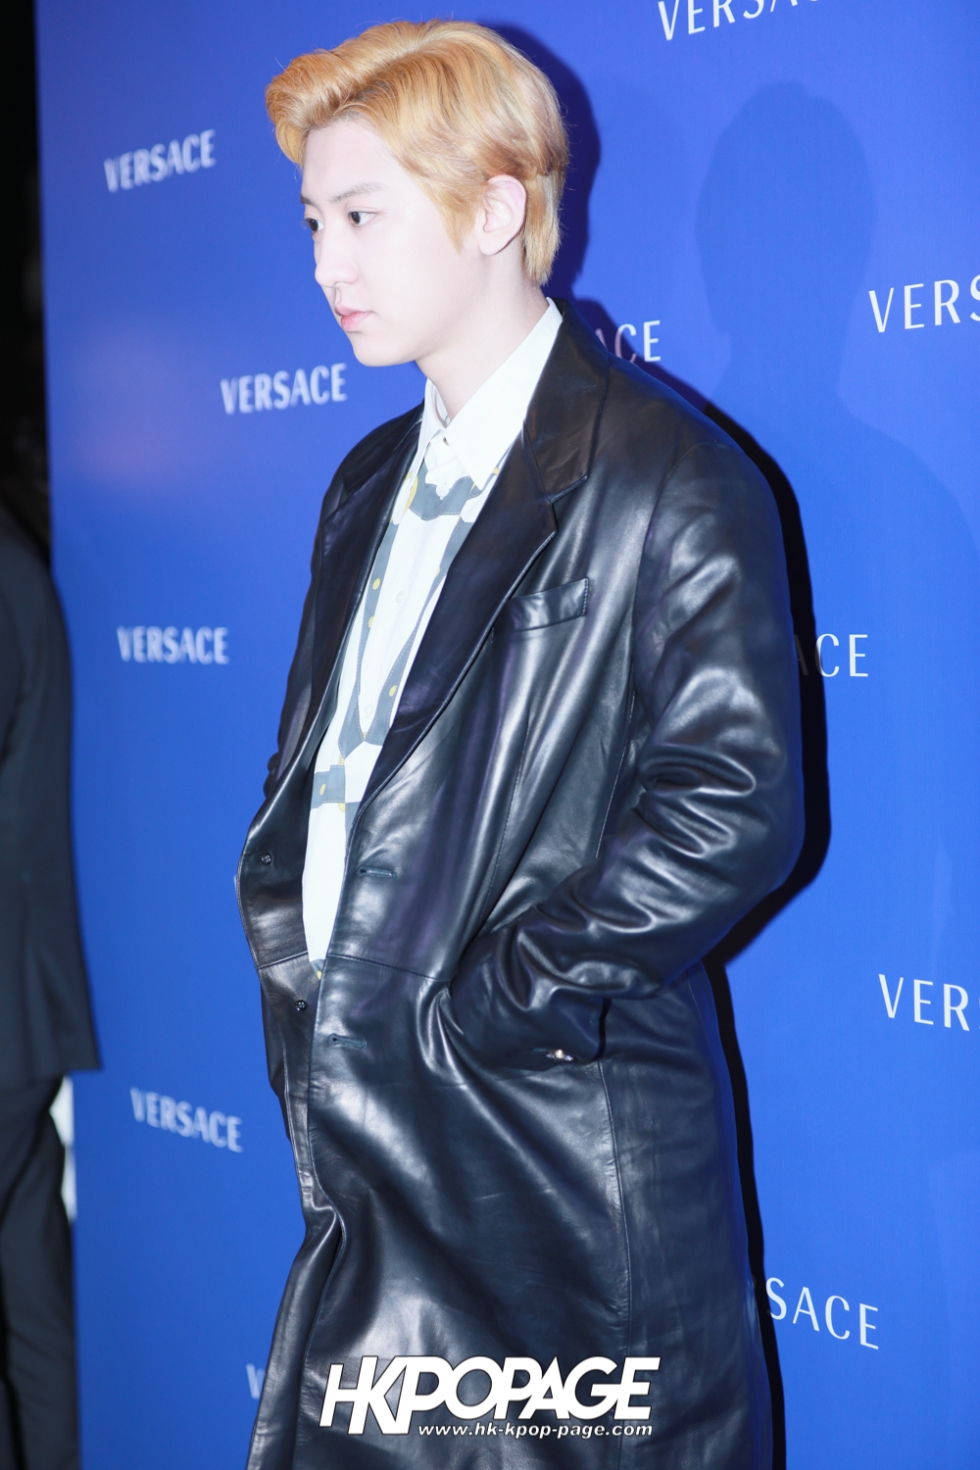 [HK.KPOP.PAGE] 190426_Chanyeol_VERSACE EVENT-1